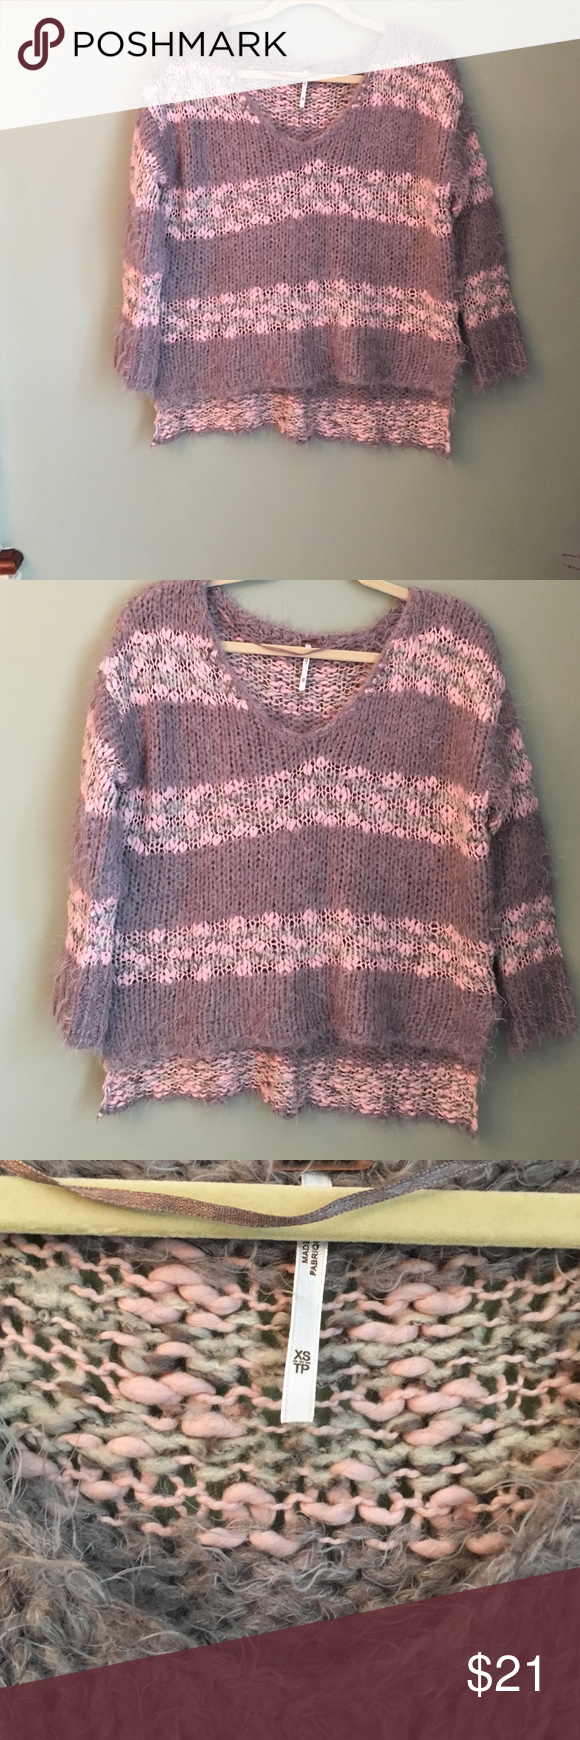 FREE PEOPLE CROPPED STRIPED SWEATER Free people pink and purple ...